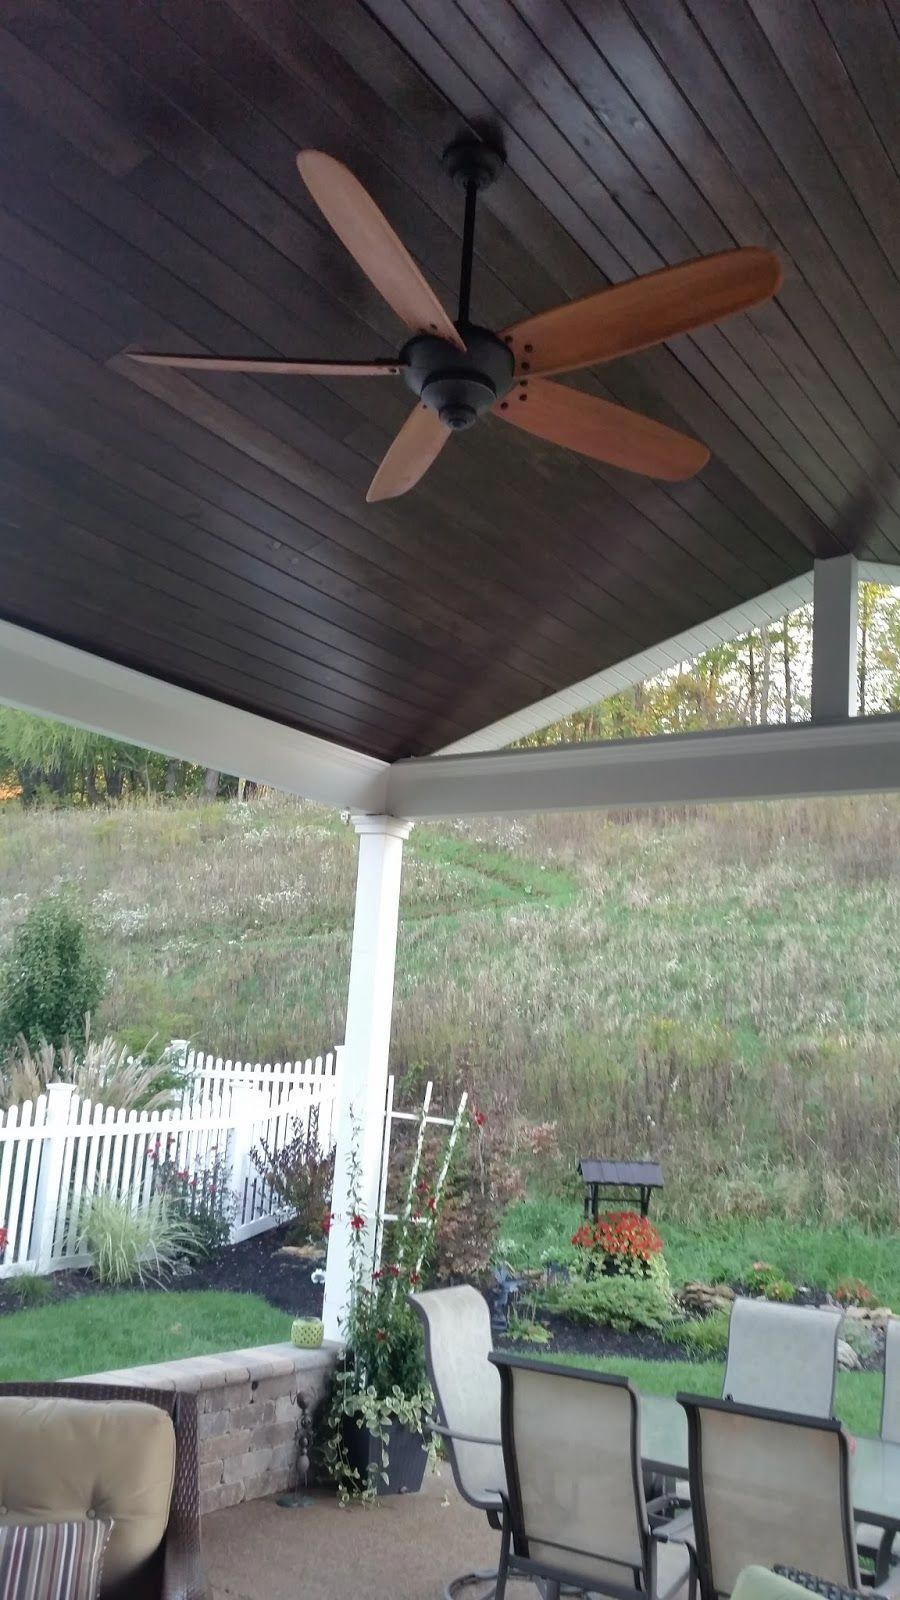 A gable roof is a roof with two sloping sides that come